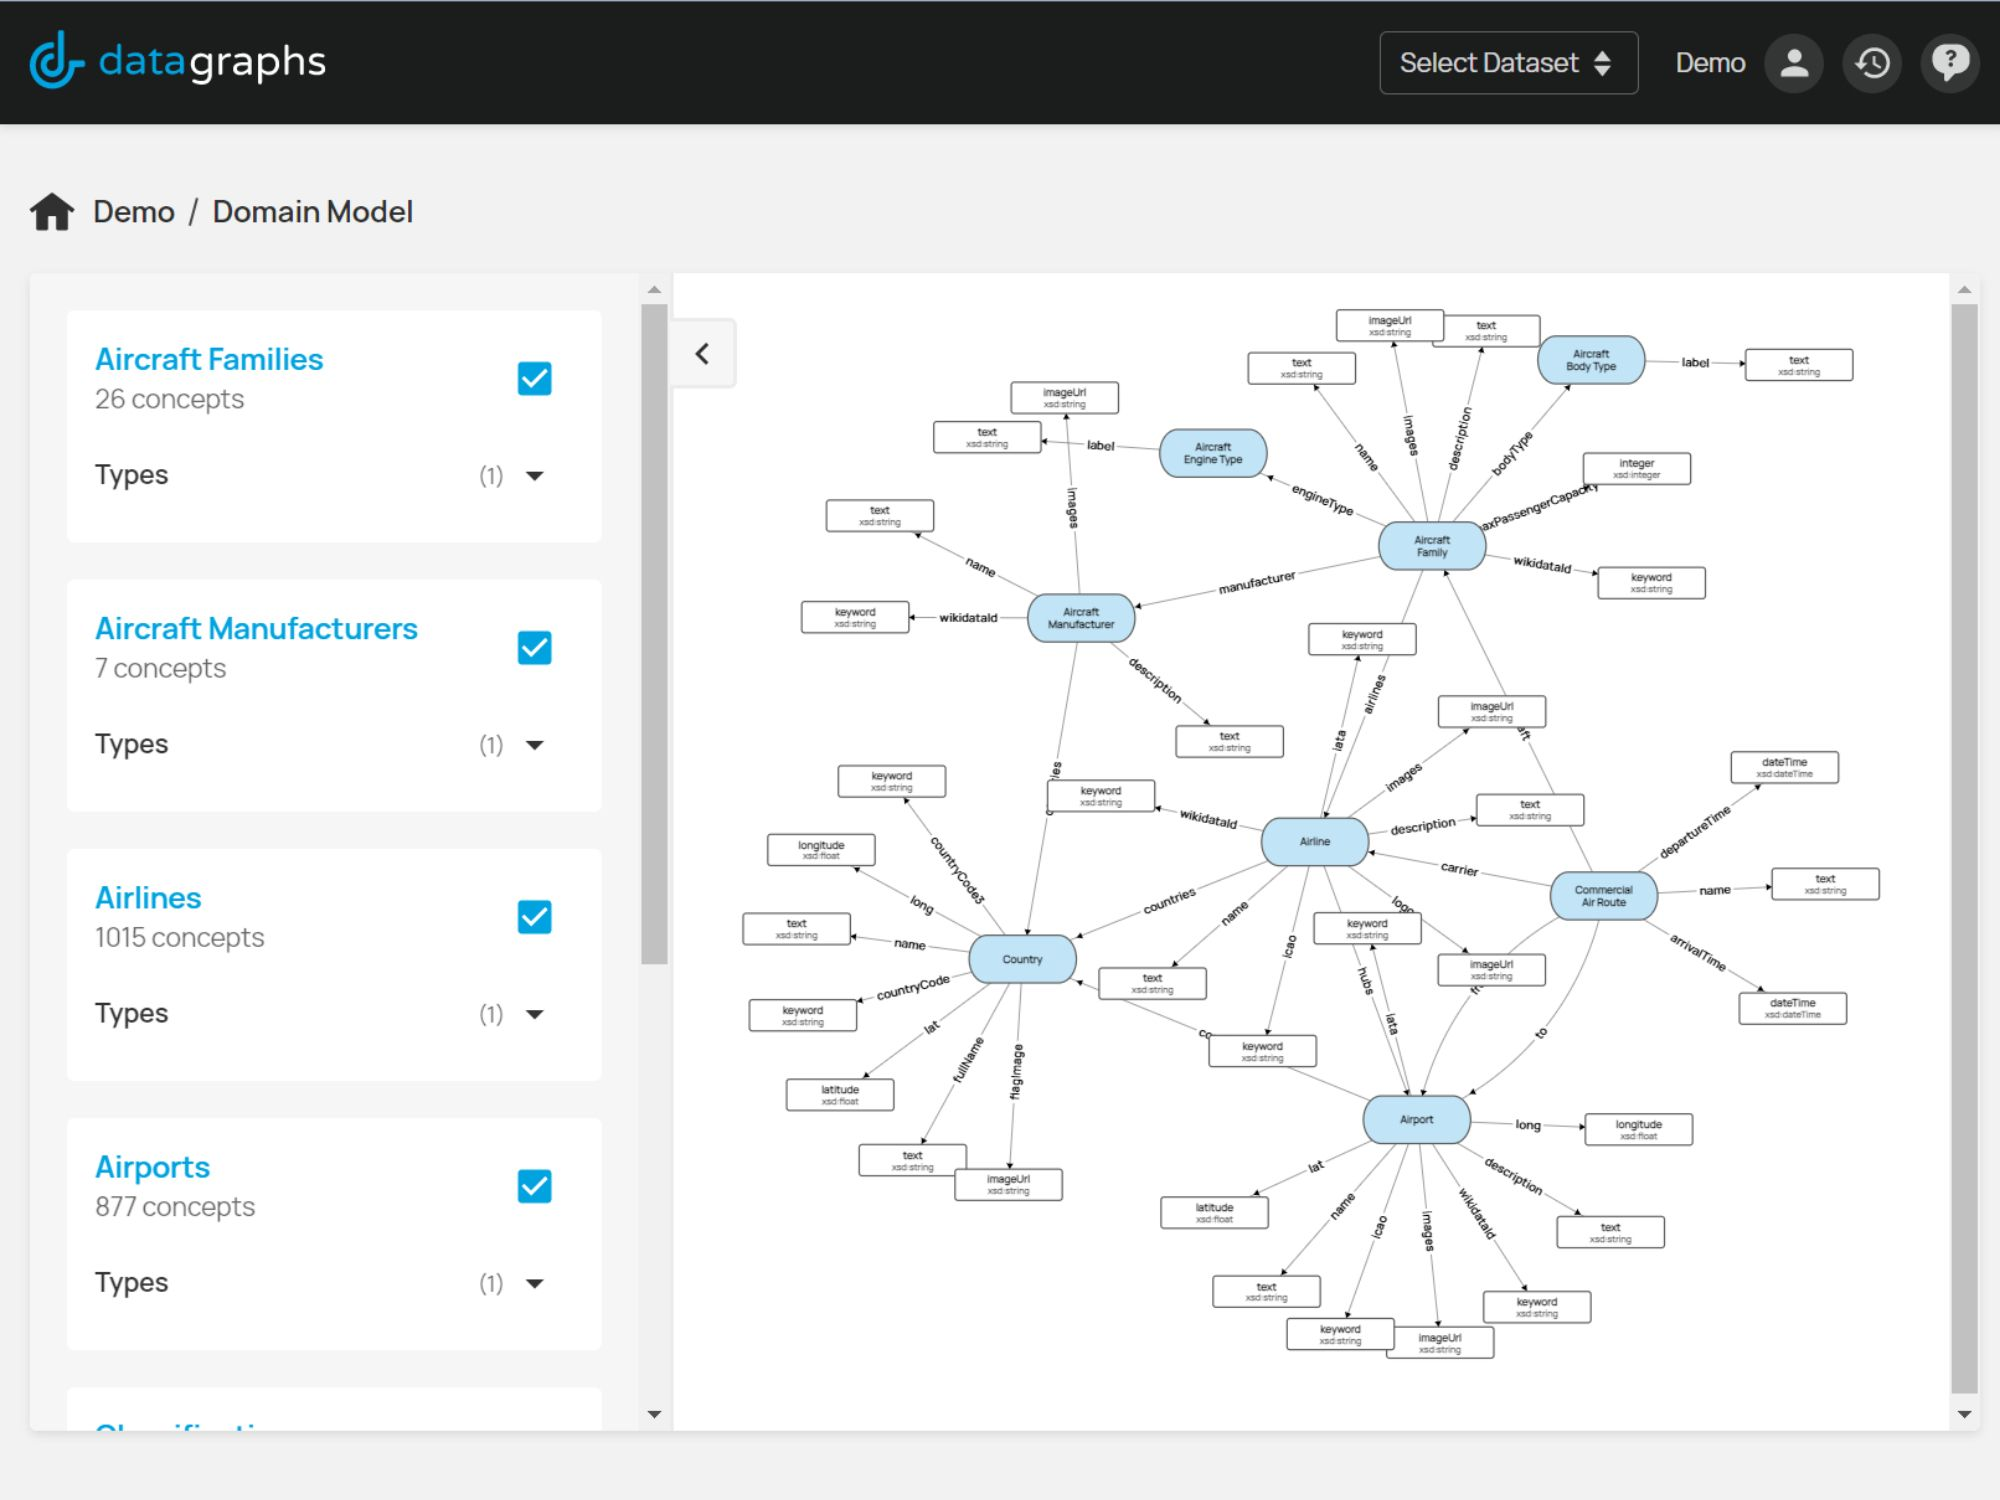 New Data Graphs Feature: 'Domain Model' View